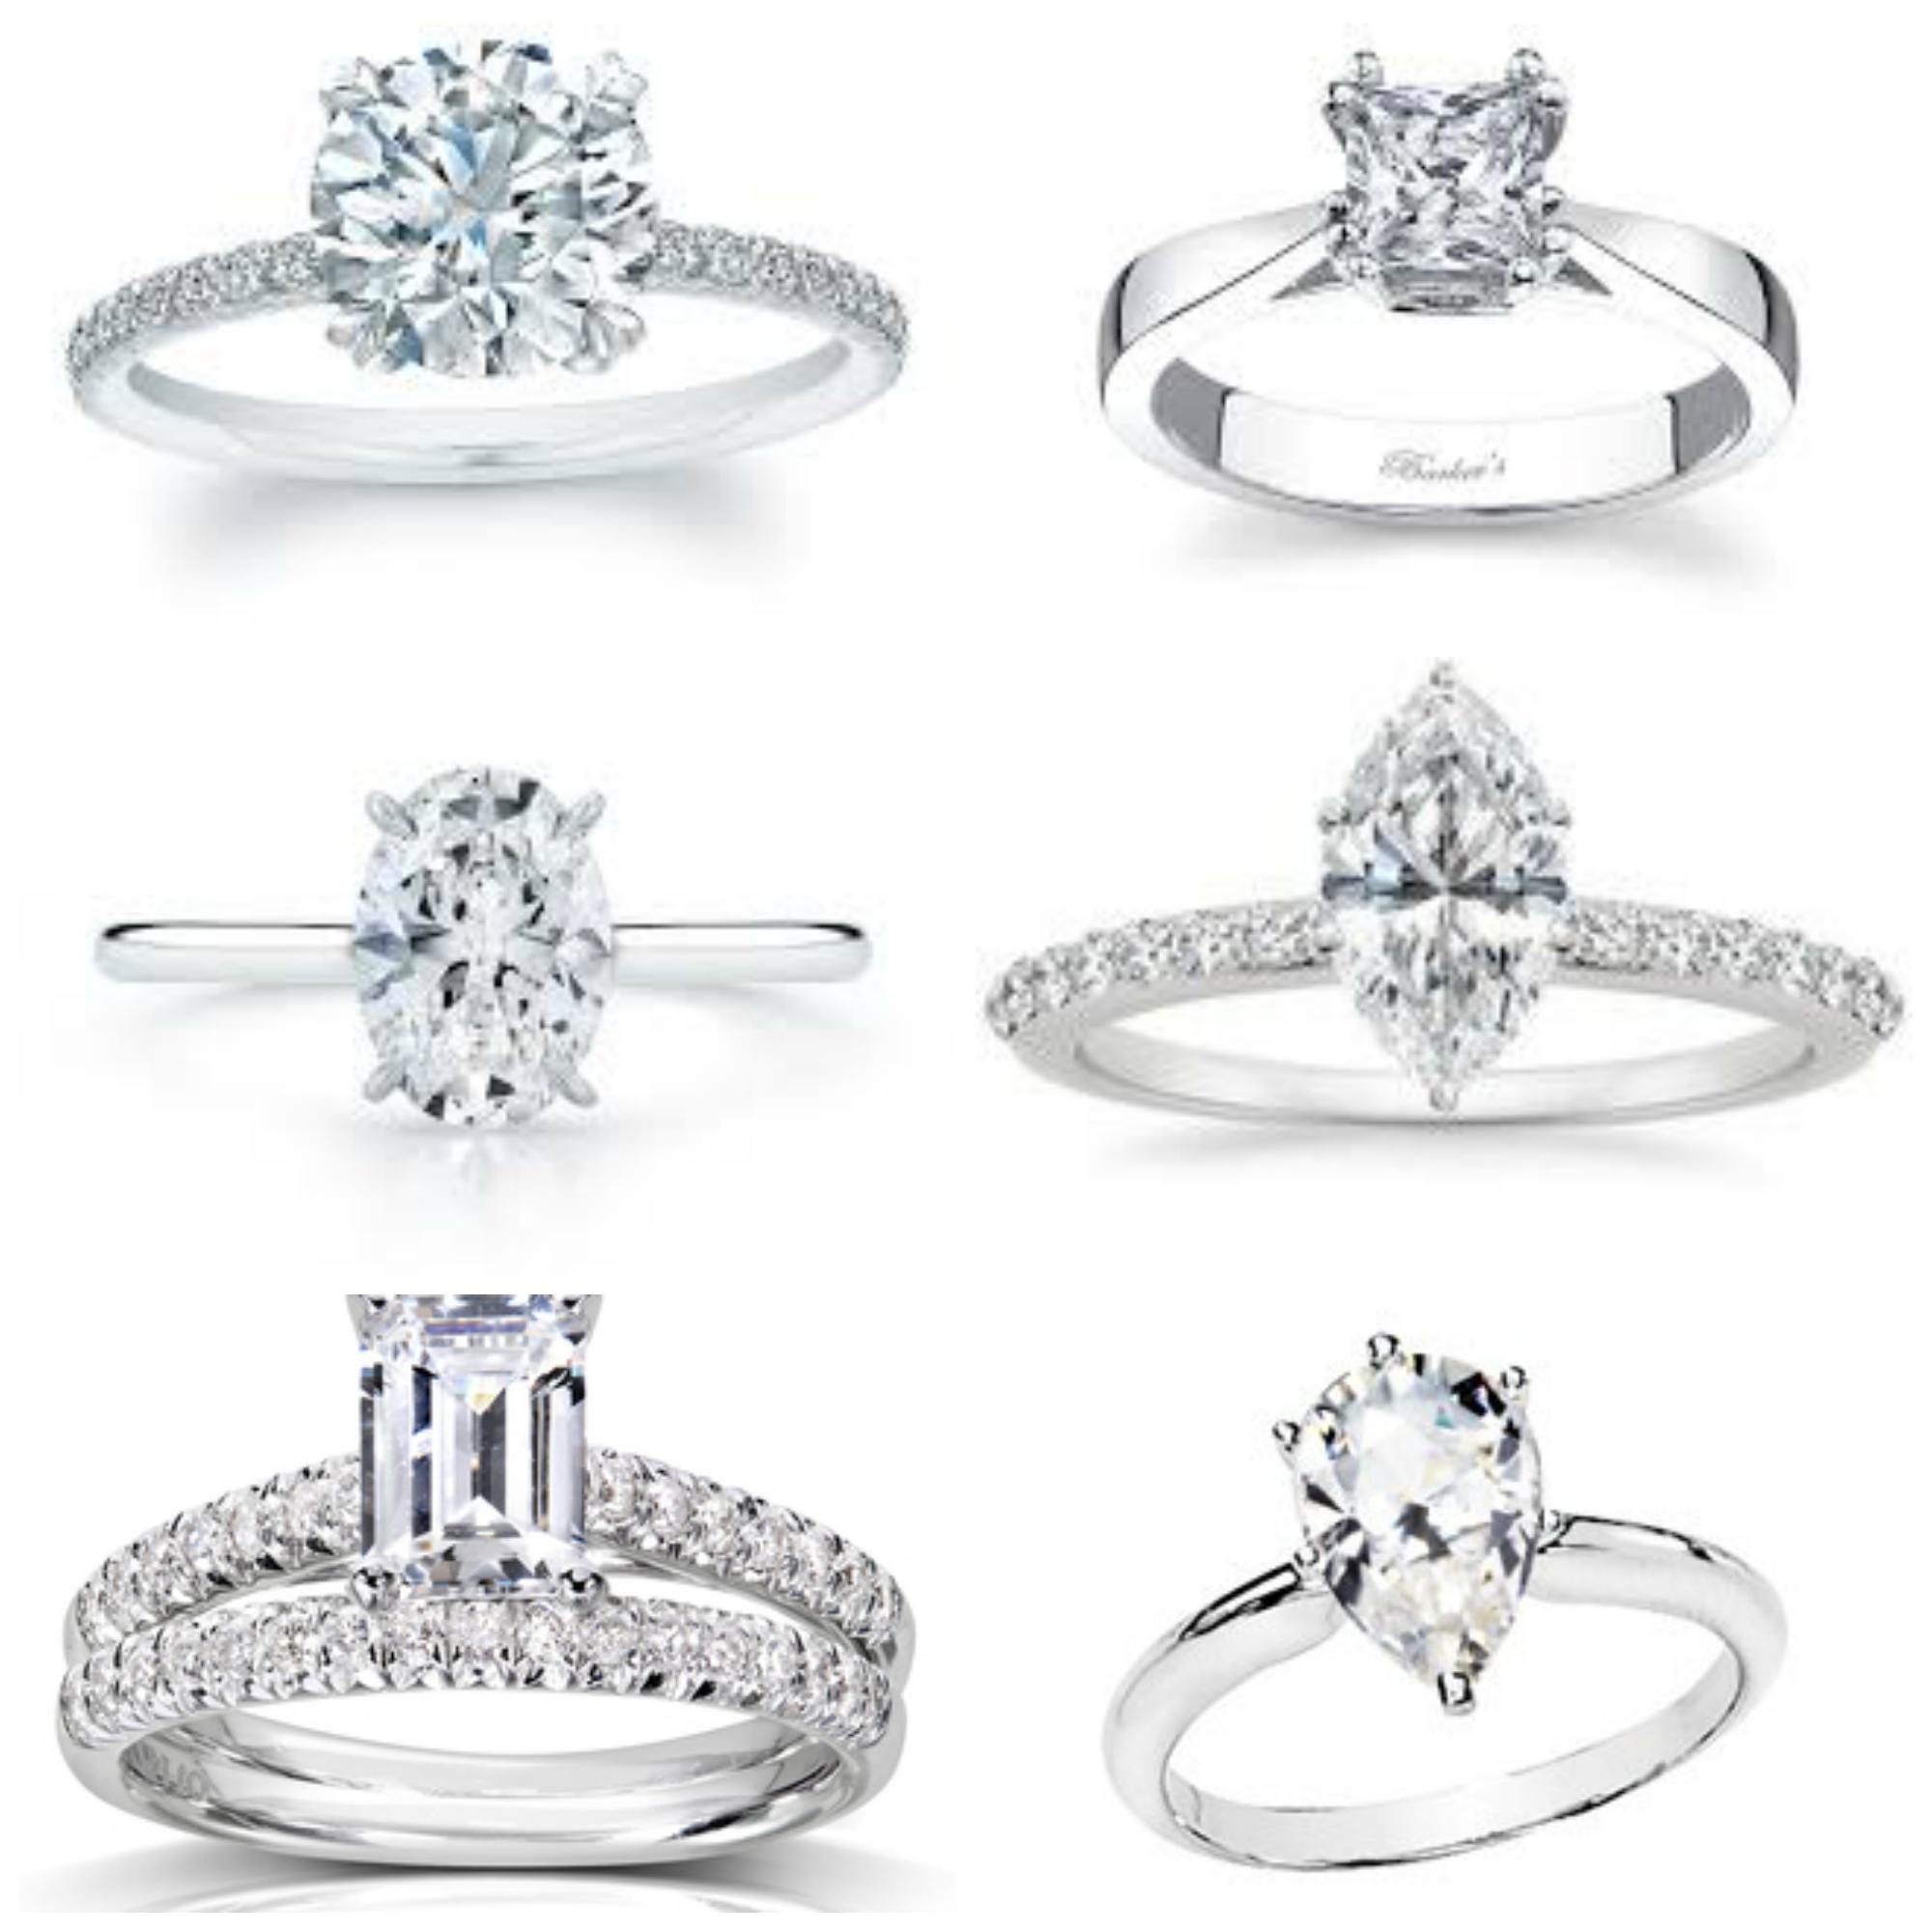 Traditional Diamond Shape Options